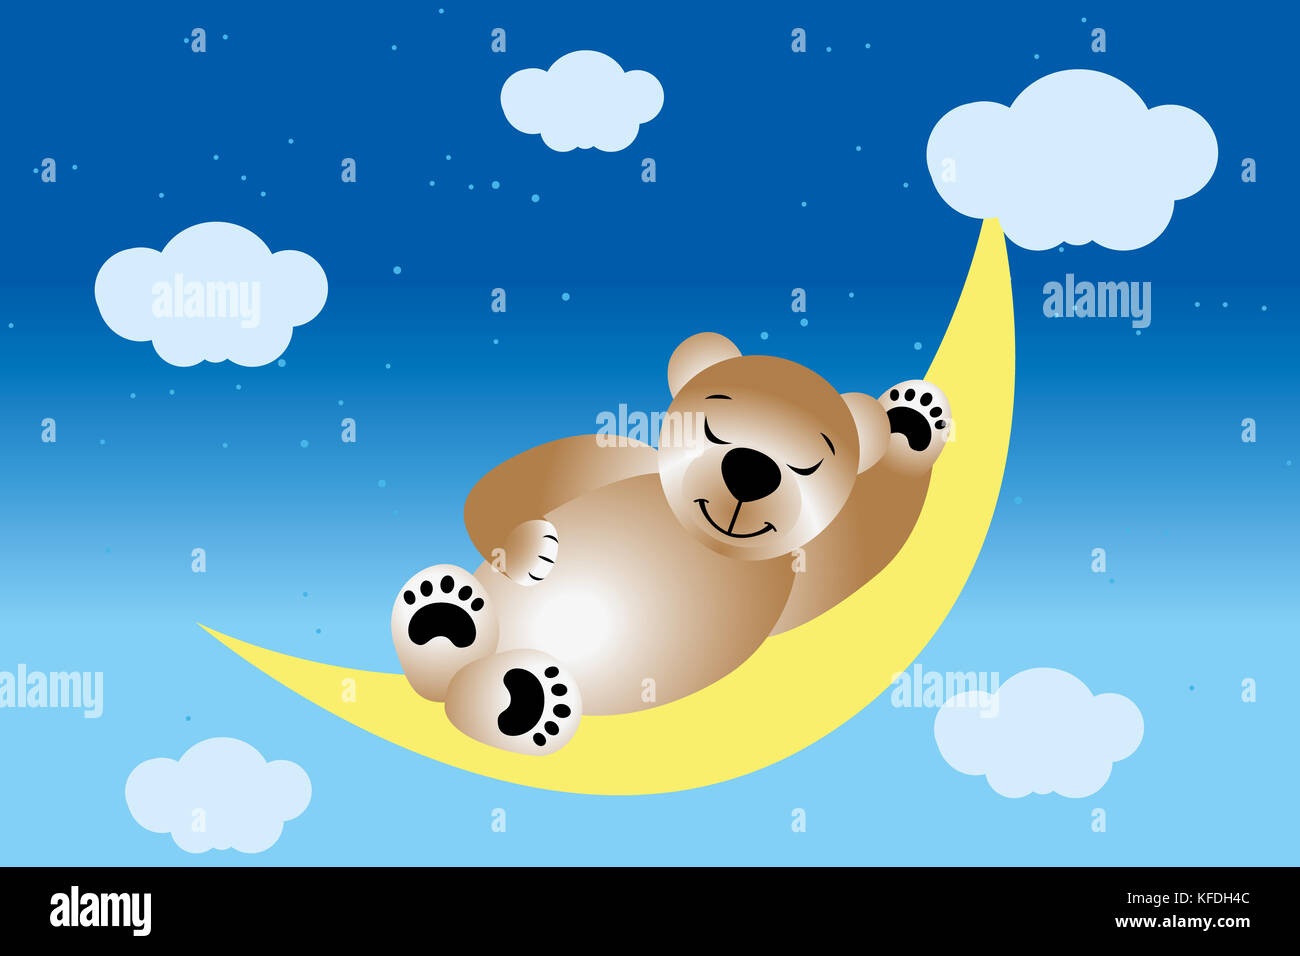 Sleeping teddy on moon in the night sky with stars and clouds Stock Photo